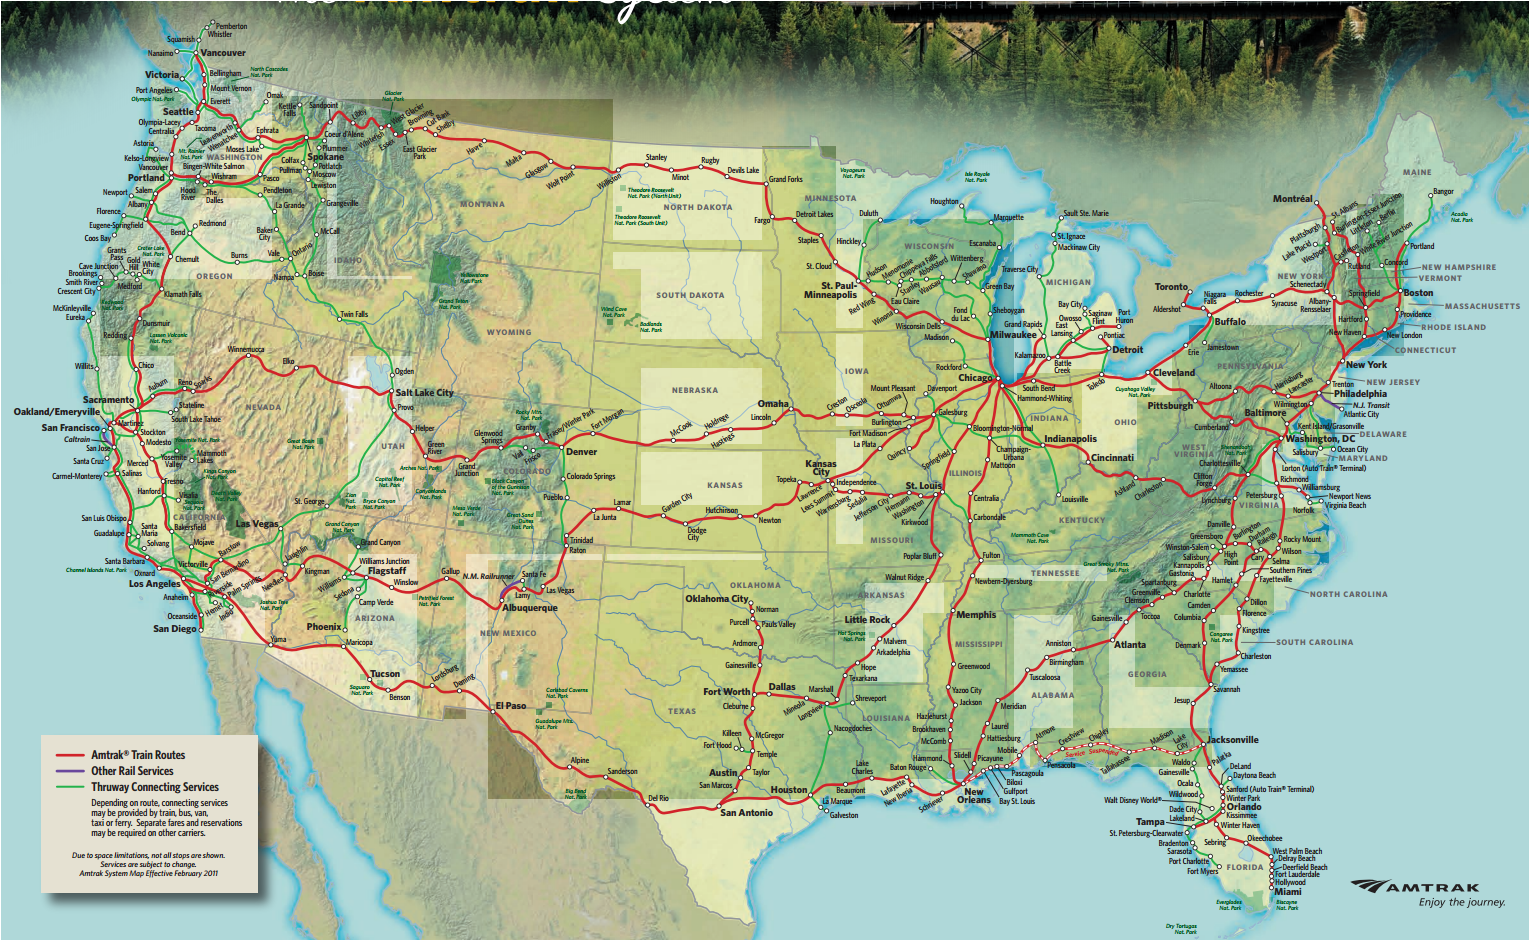 US Amtrak Routes and connections. Site: www.amtrak.com ...